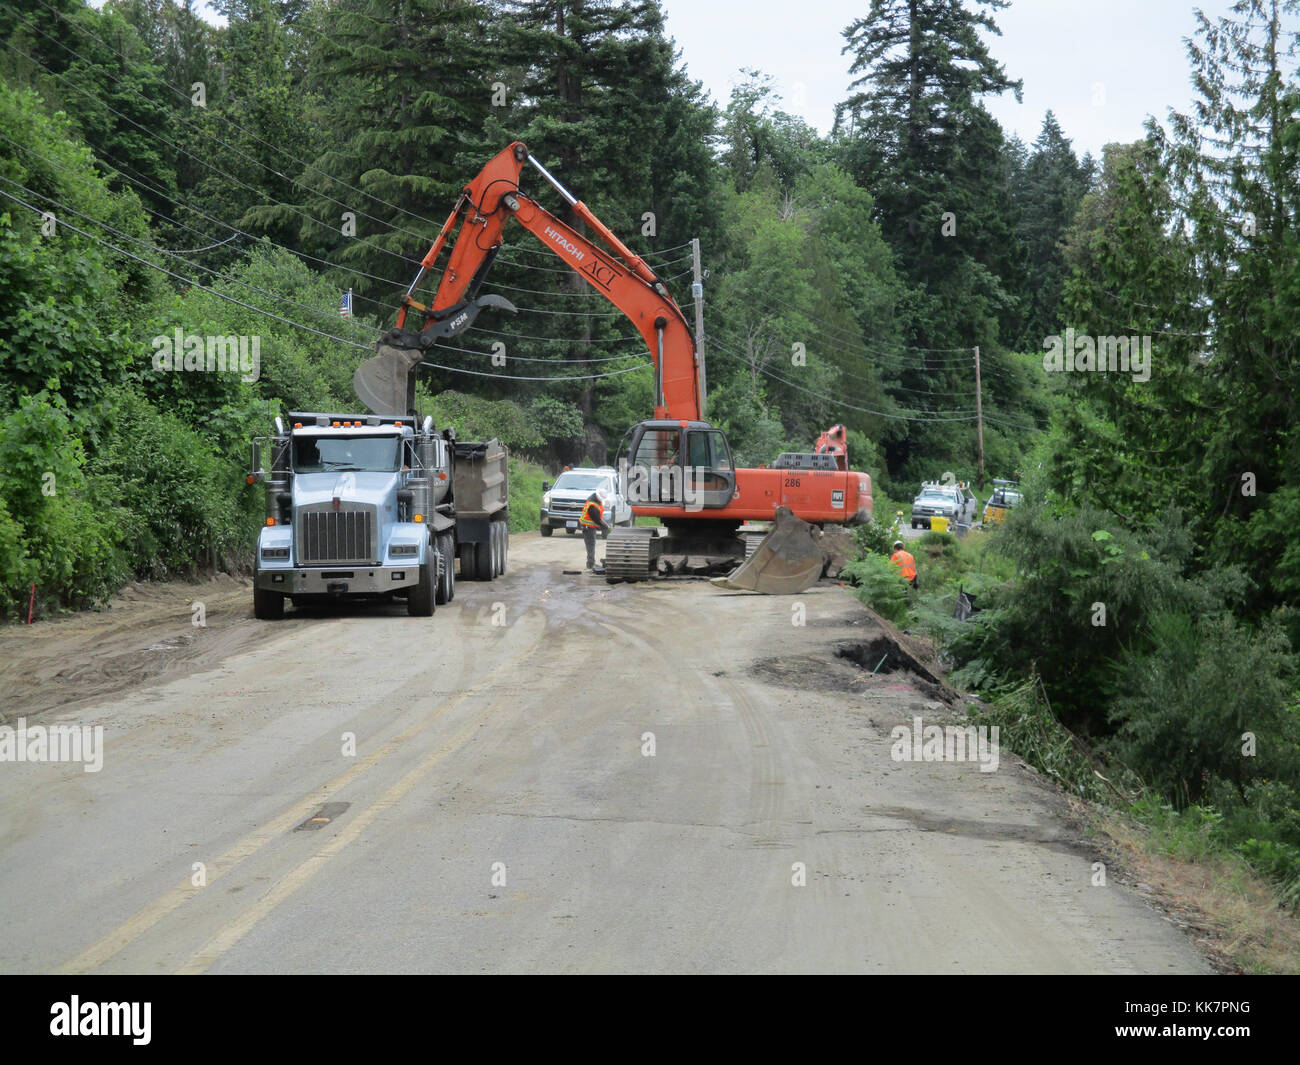 Crews working for WSDOT closed SR 302 at milepost 4 5 during the